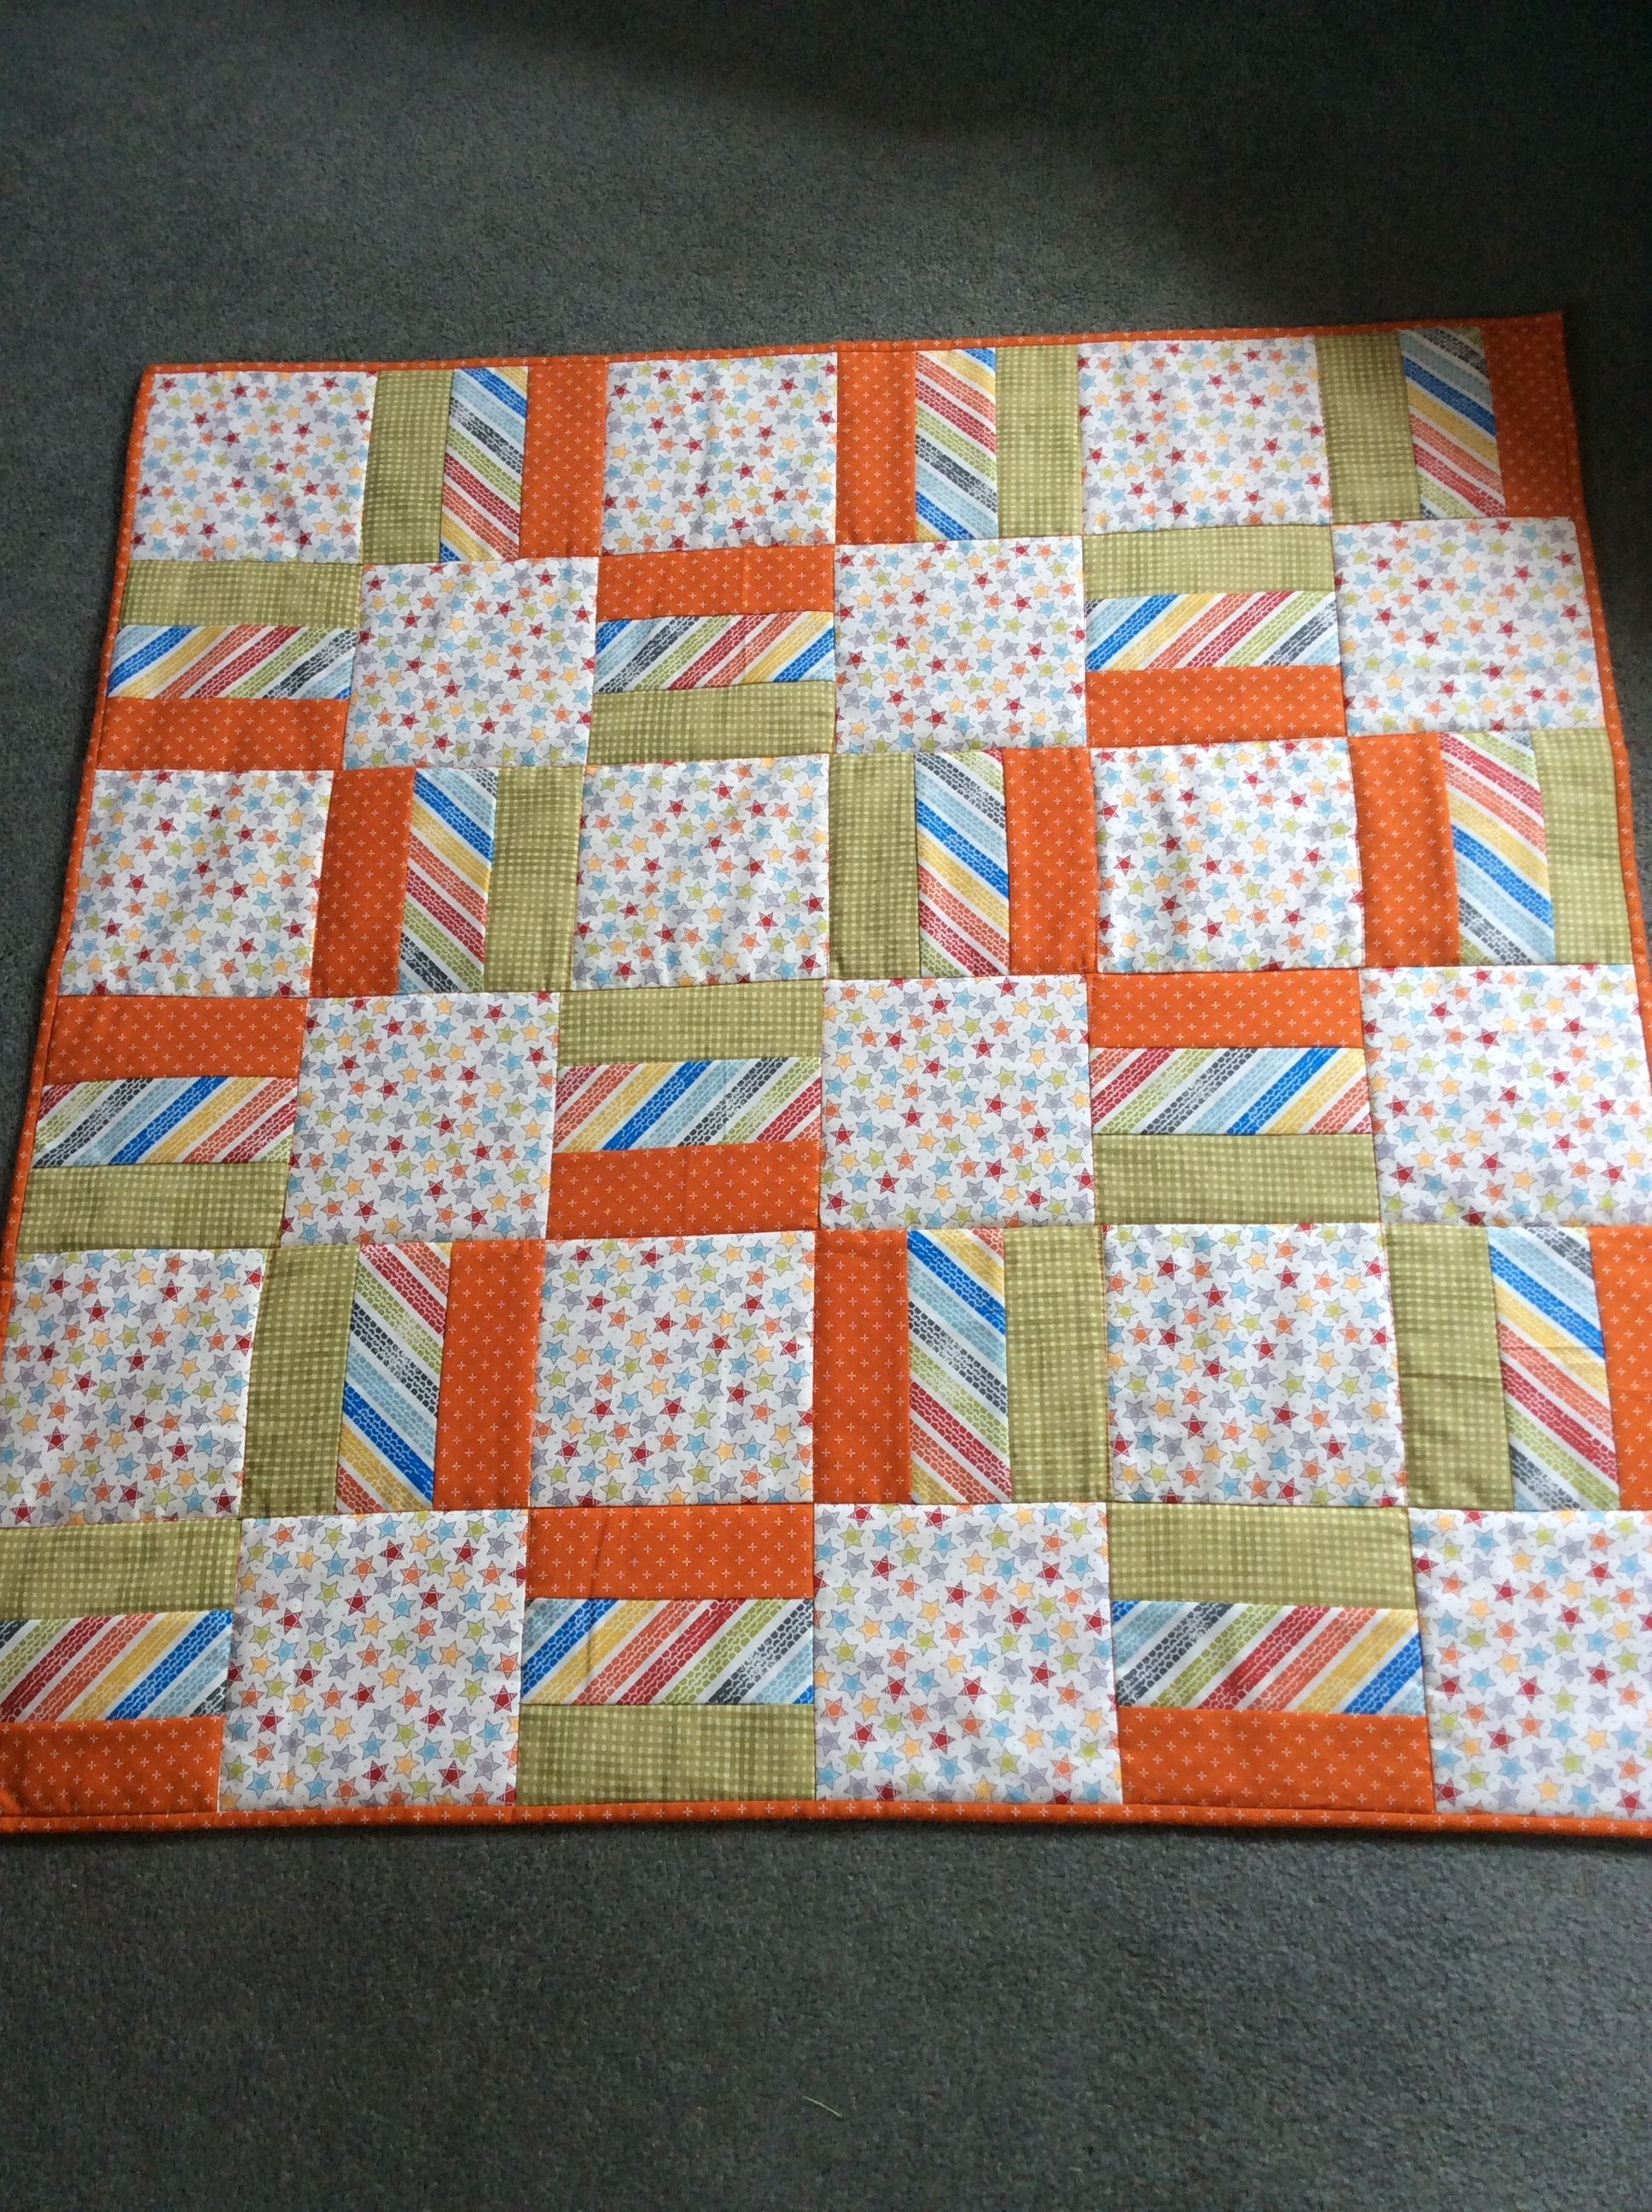 Best 7 Looks Like A Quick Easy Pattern For A Baby Quilt The Bigger You Make The Stripes And Squares The Quicker Your Boys Quilt Patterns Quilts Easy Quilts